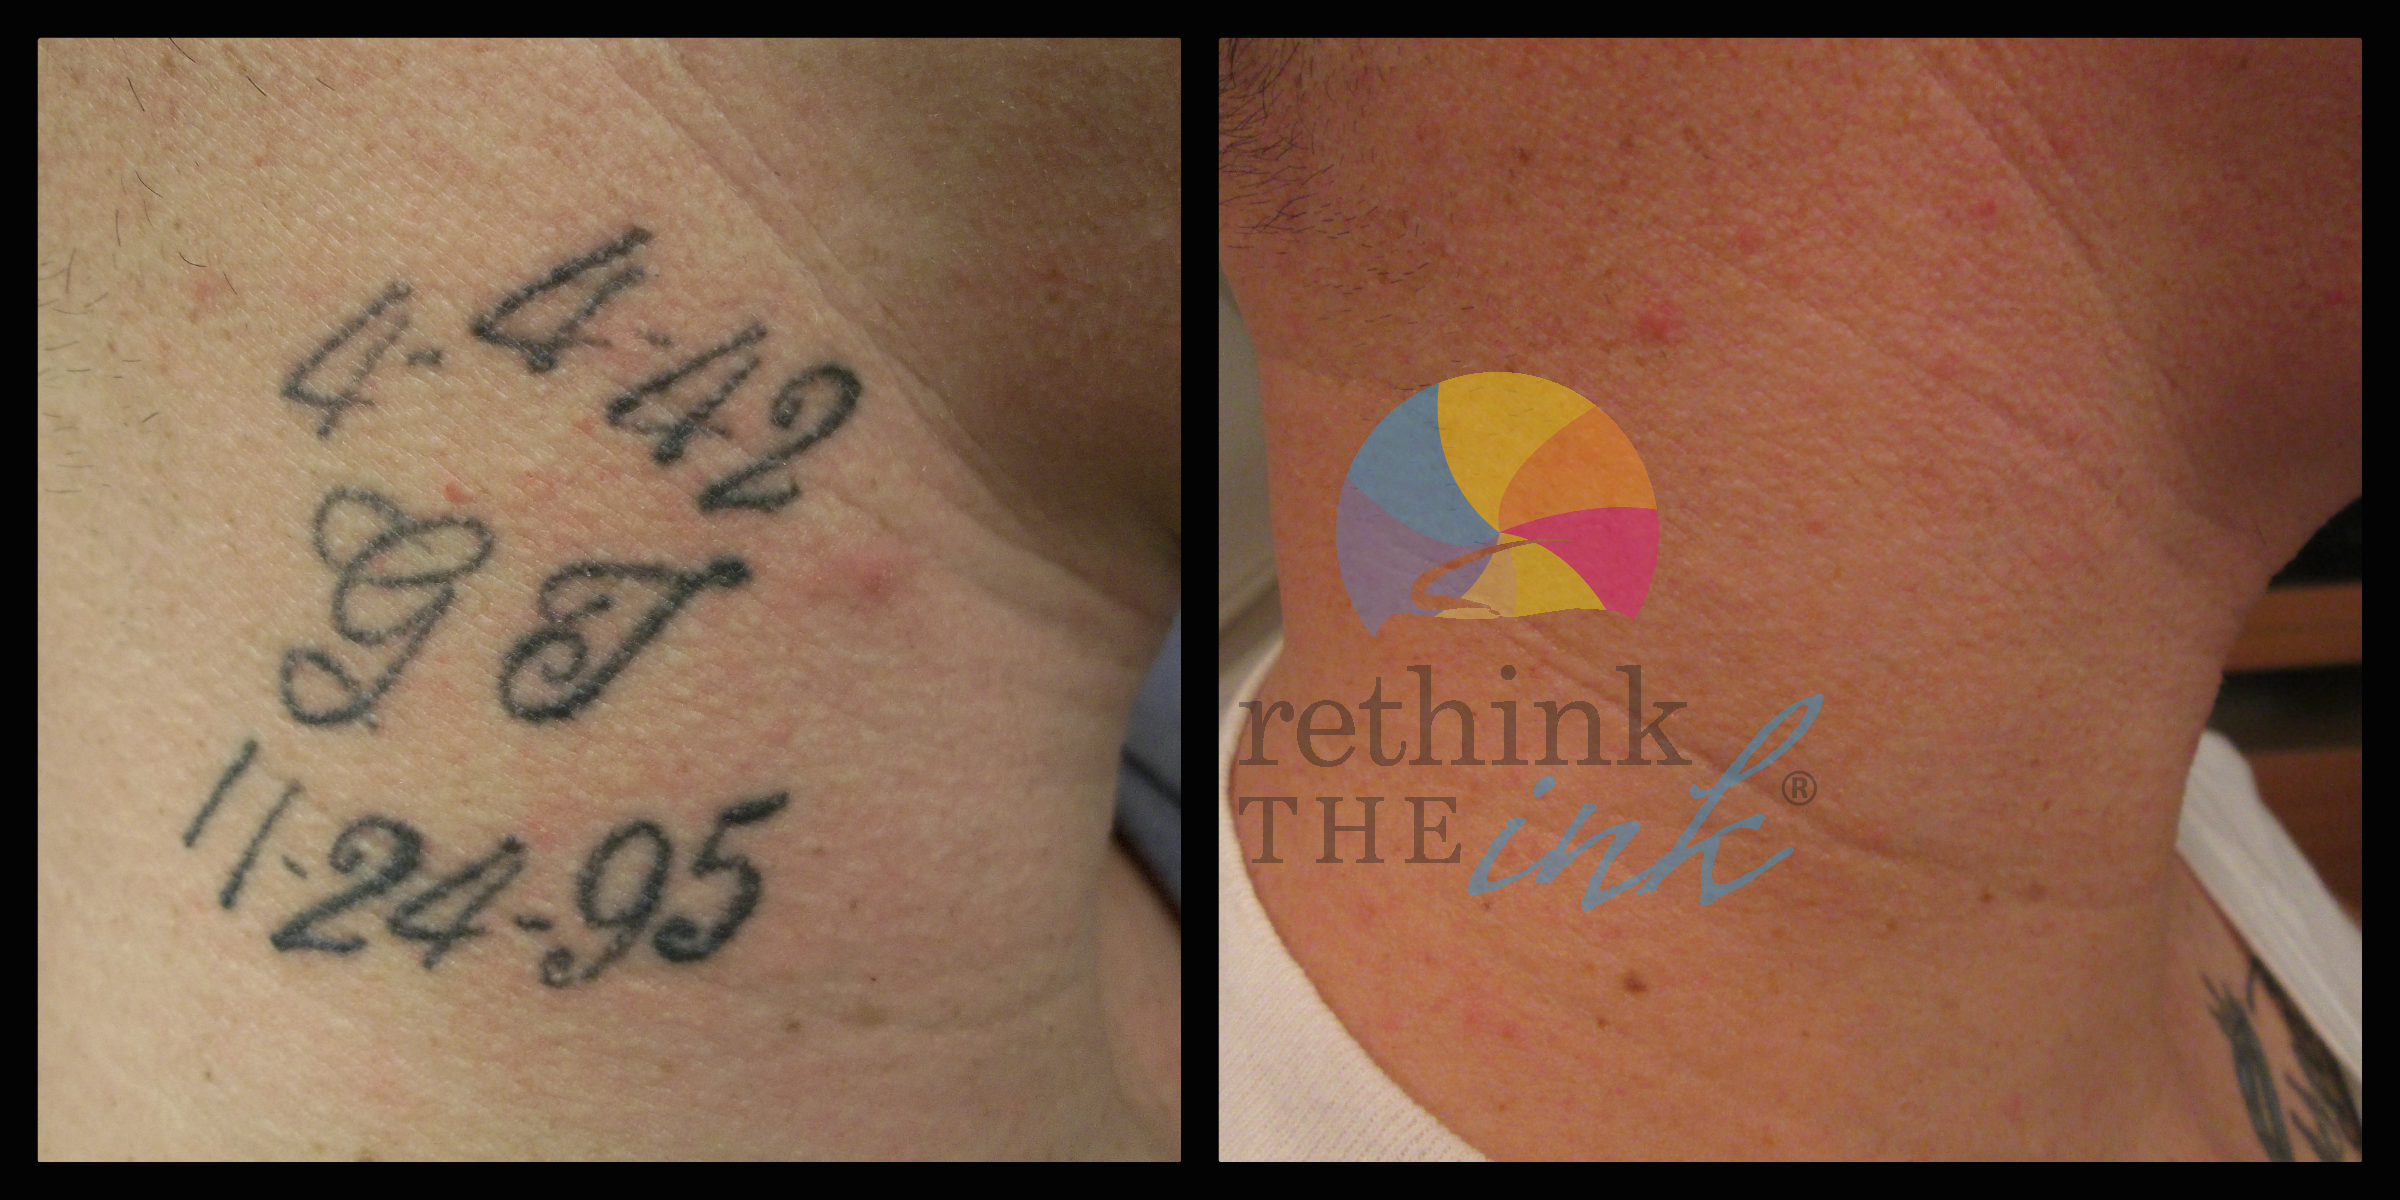 Tattoo Removal Before and After PicturesRethink the Ink